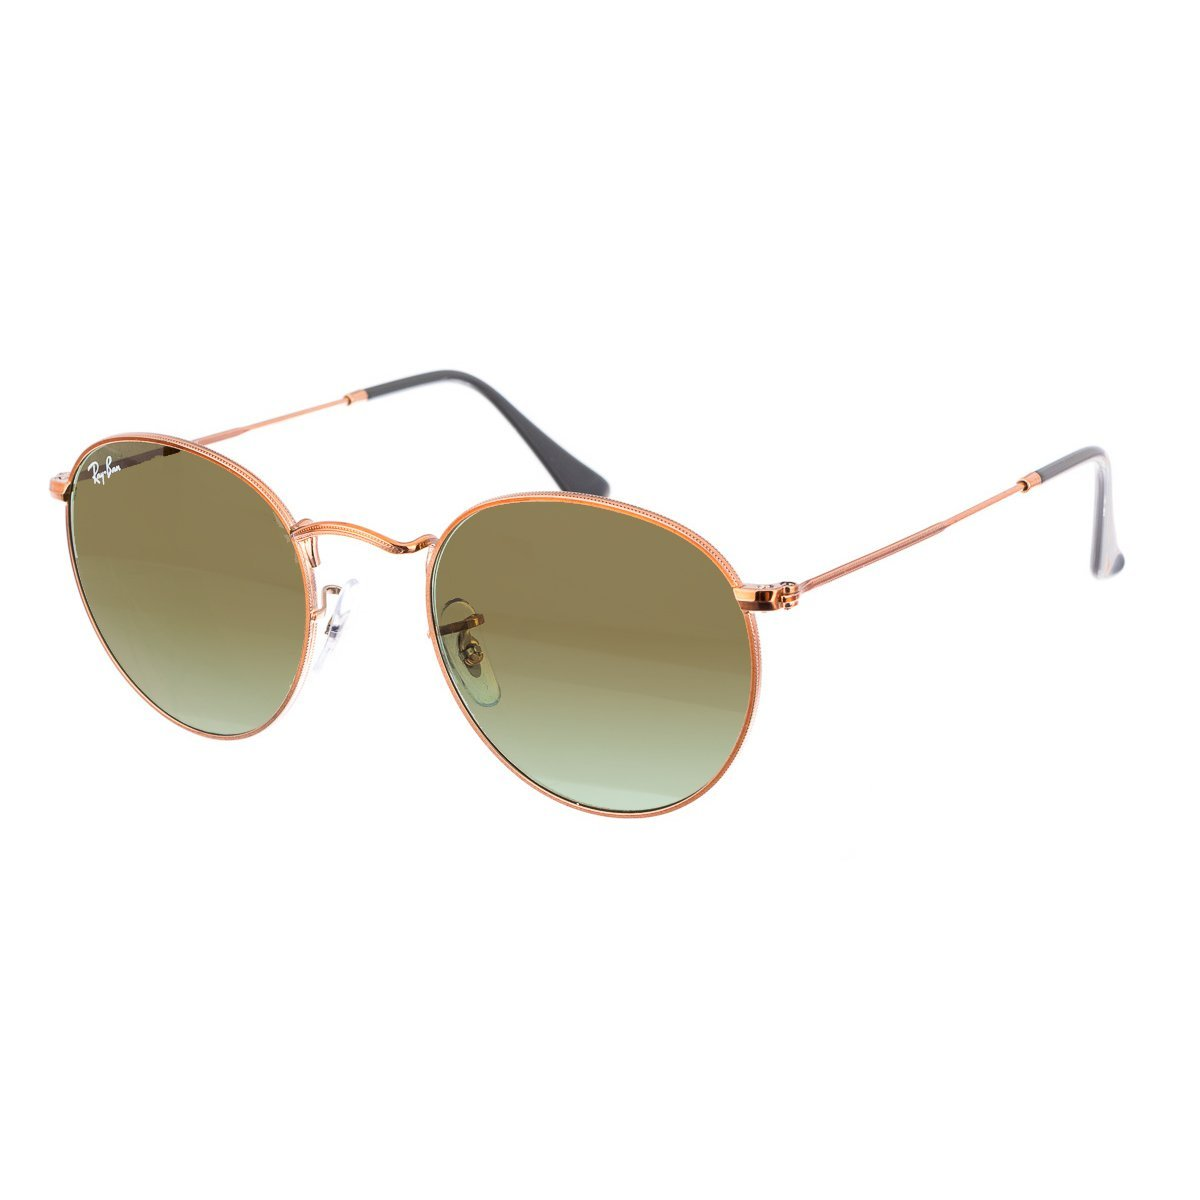 Ray-Ban Metal Round Sunglasses, Shiny Medium Bronze, 53 mm by Ray-Ban